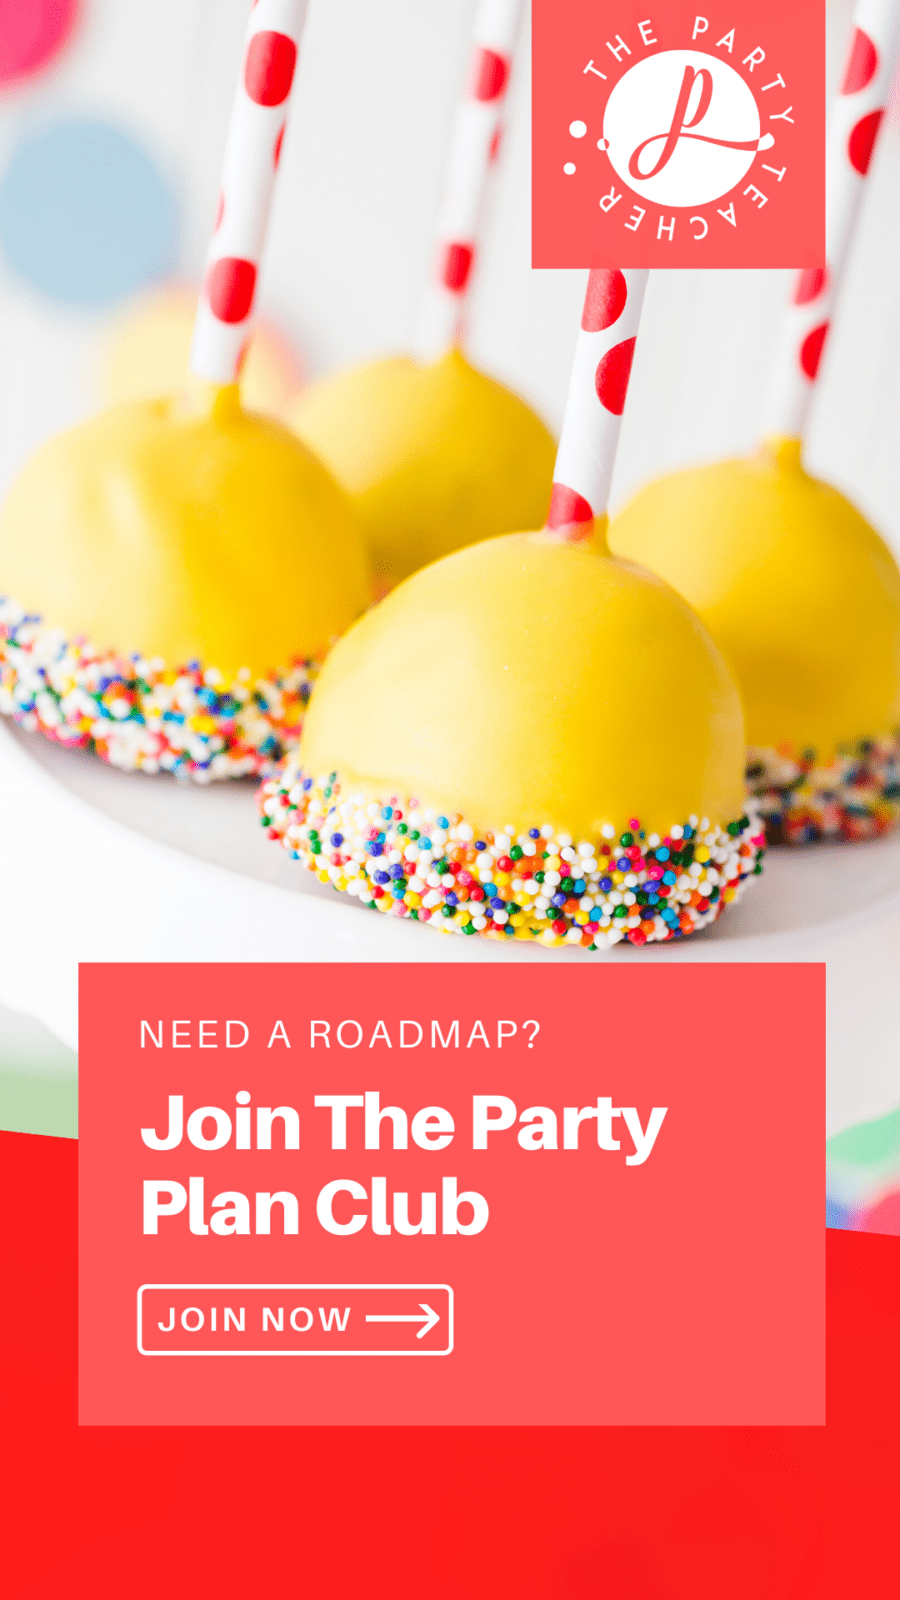 Join The Party Plan Club